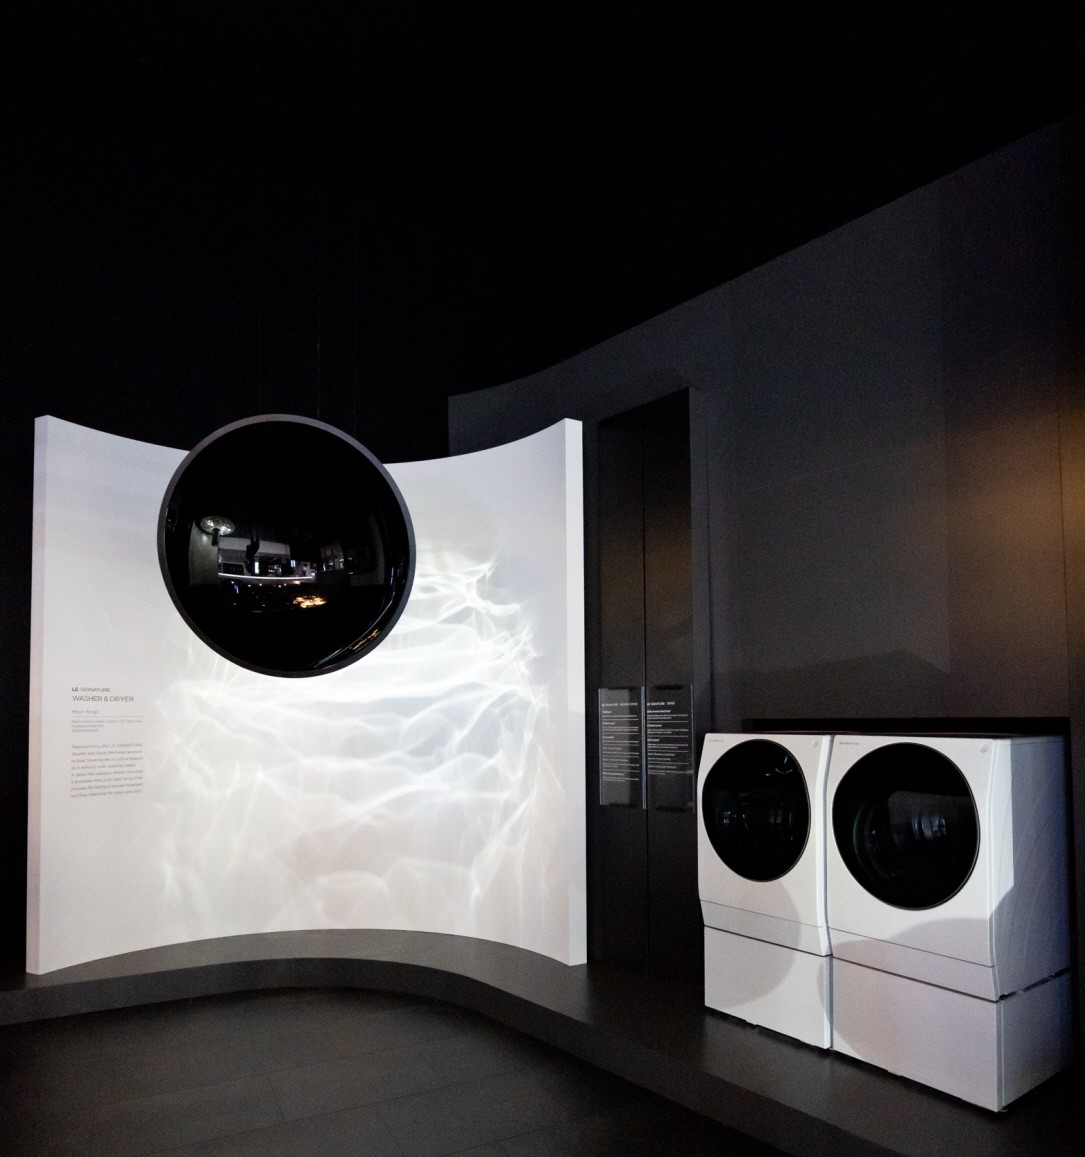 View of a pair of the LG SIGNATURE washer-dryers and a display to the left giving information about their features.